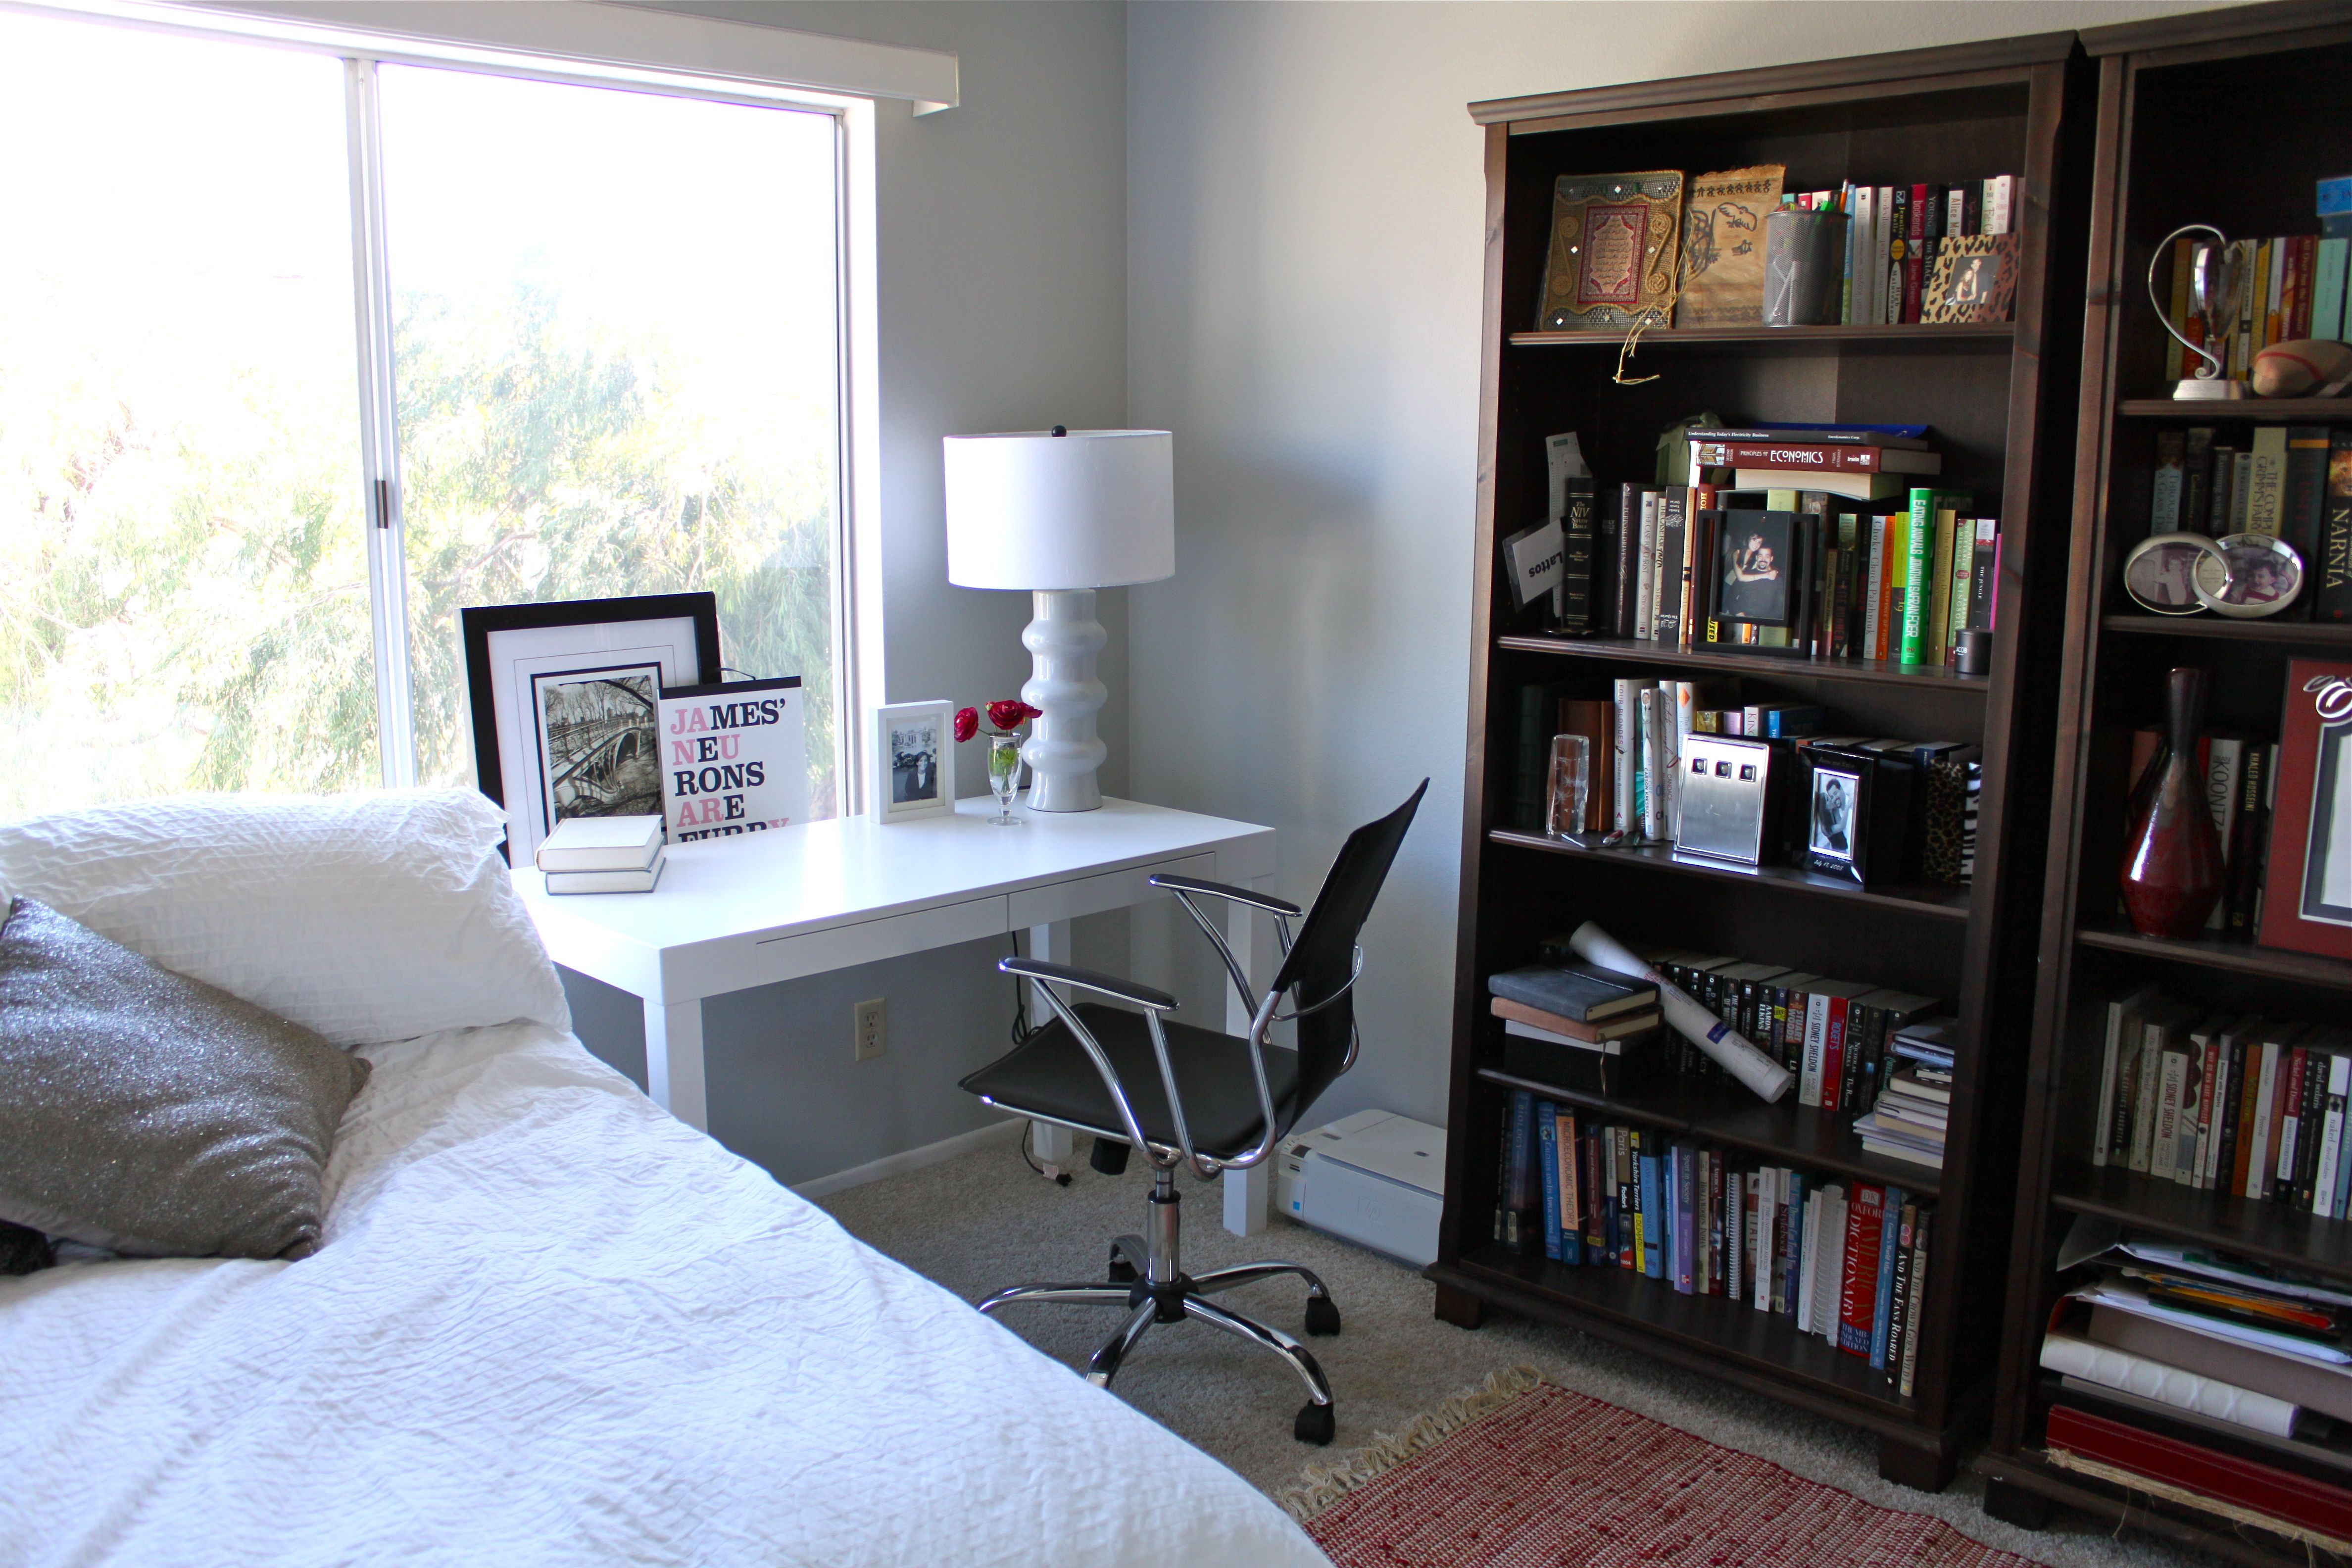 guest room/office - Google Search | Home Office/Guest Room | Pinterest